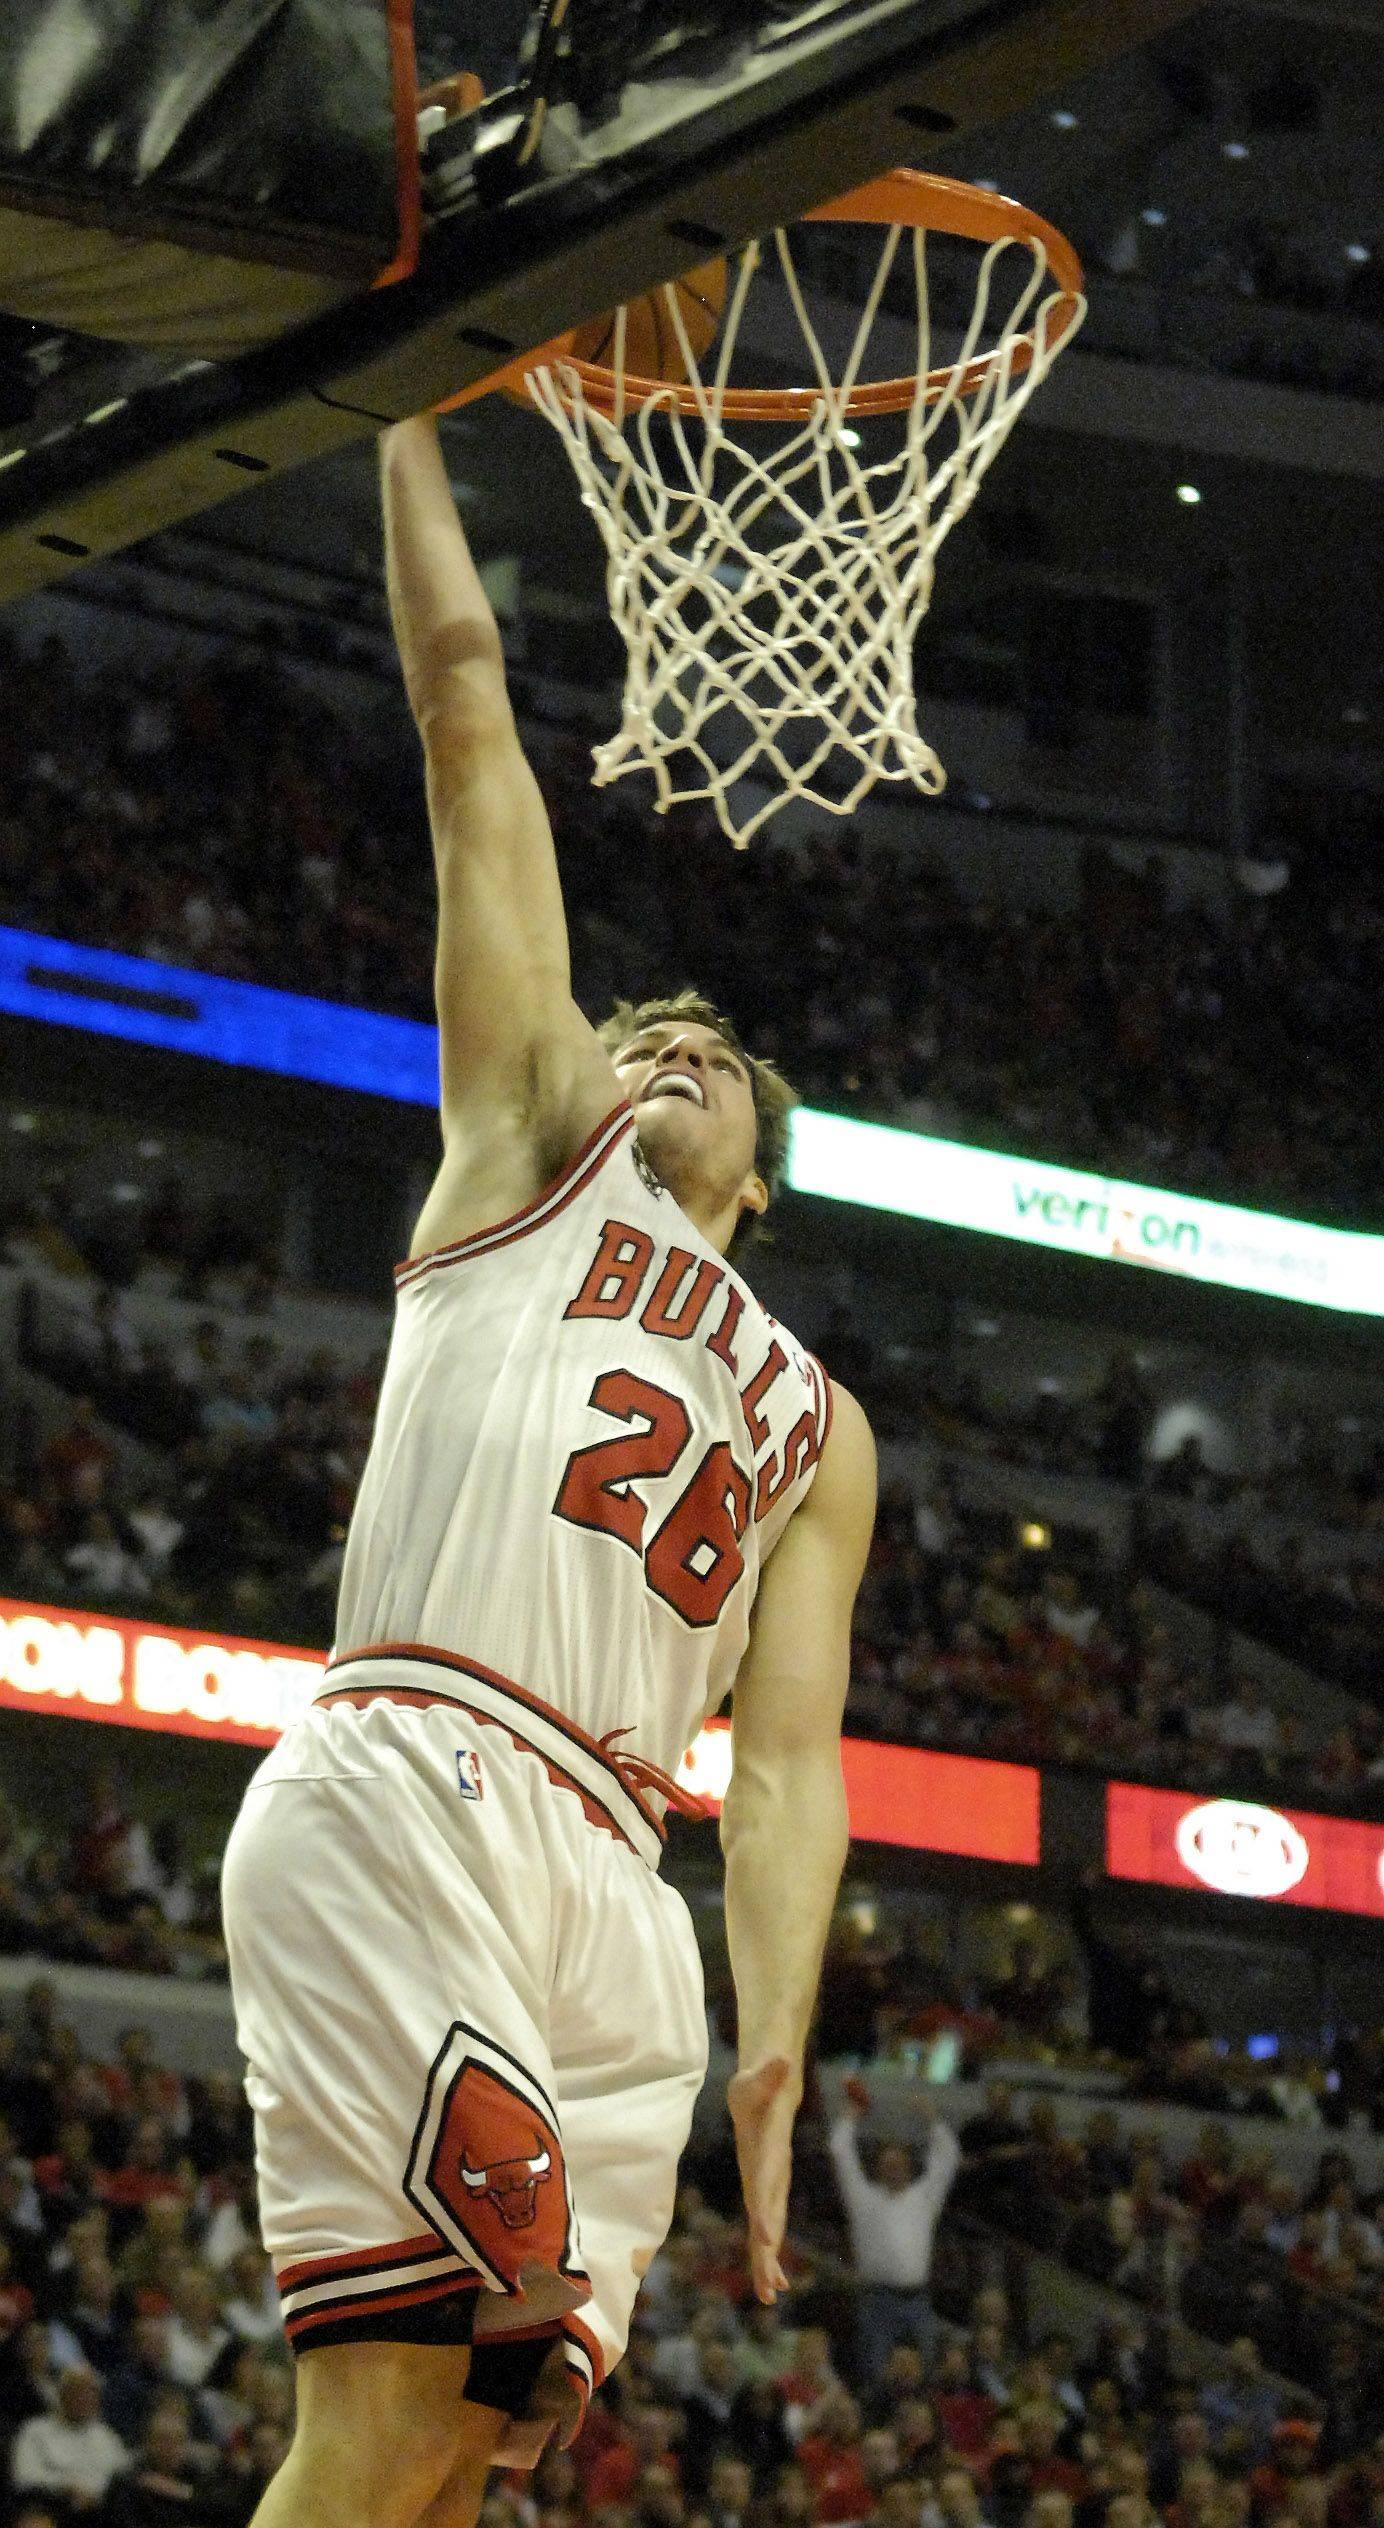 Chicago's Kyle Korver drops in an open layup during game 5 in Chicago Tuesday.